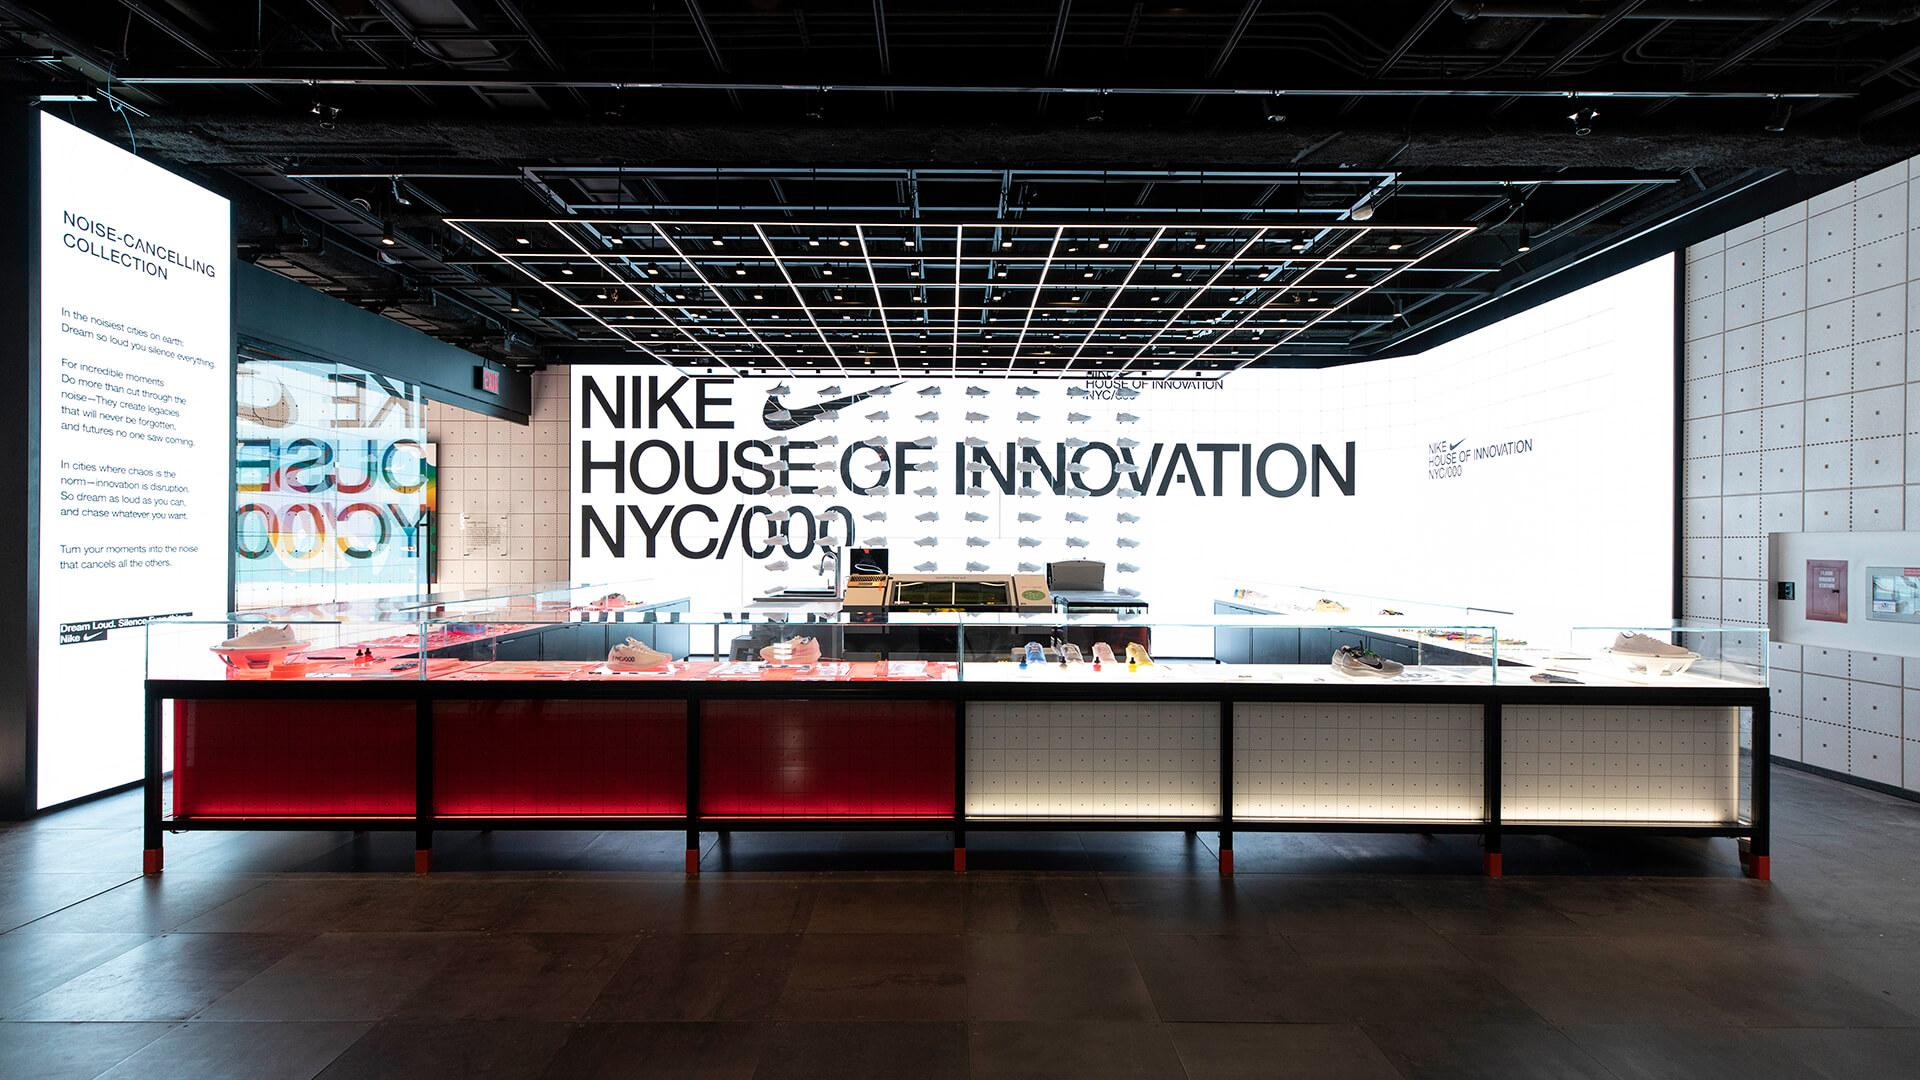 Óxido salir George Eliot  FRAME | Nike's House of Innovation 000 shows that big data does not equal  loss of theatre